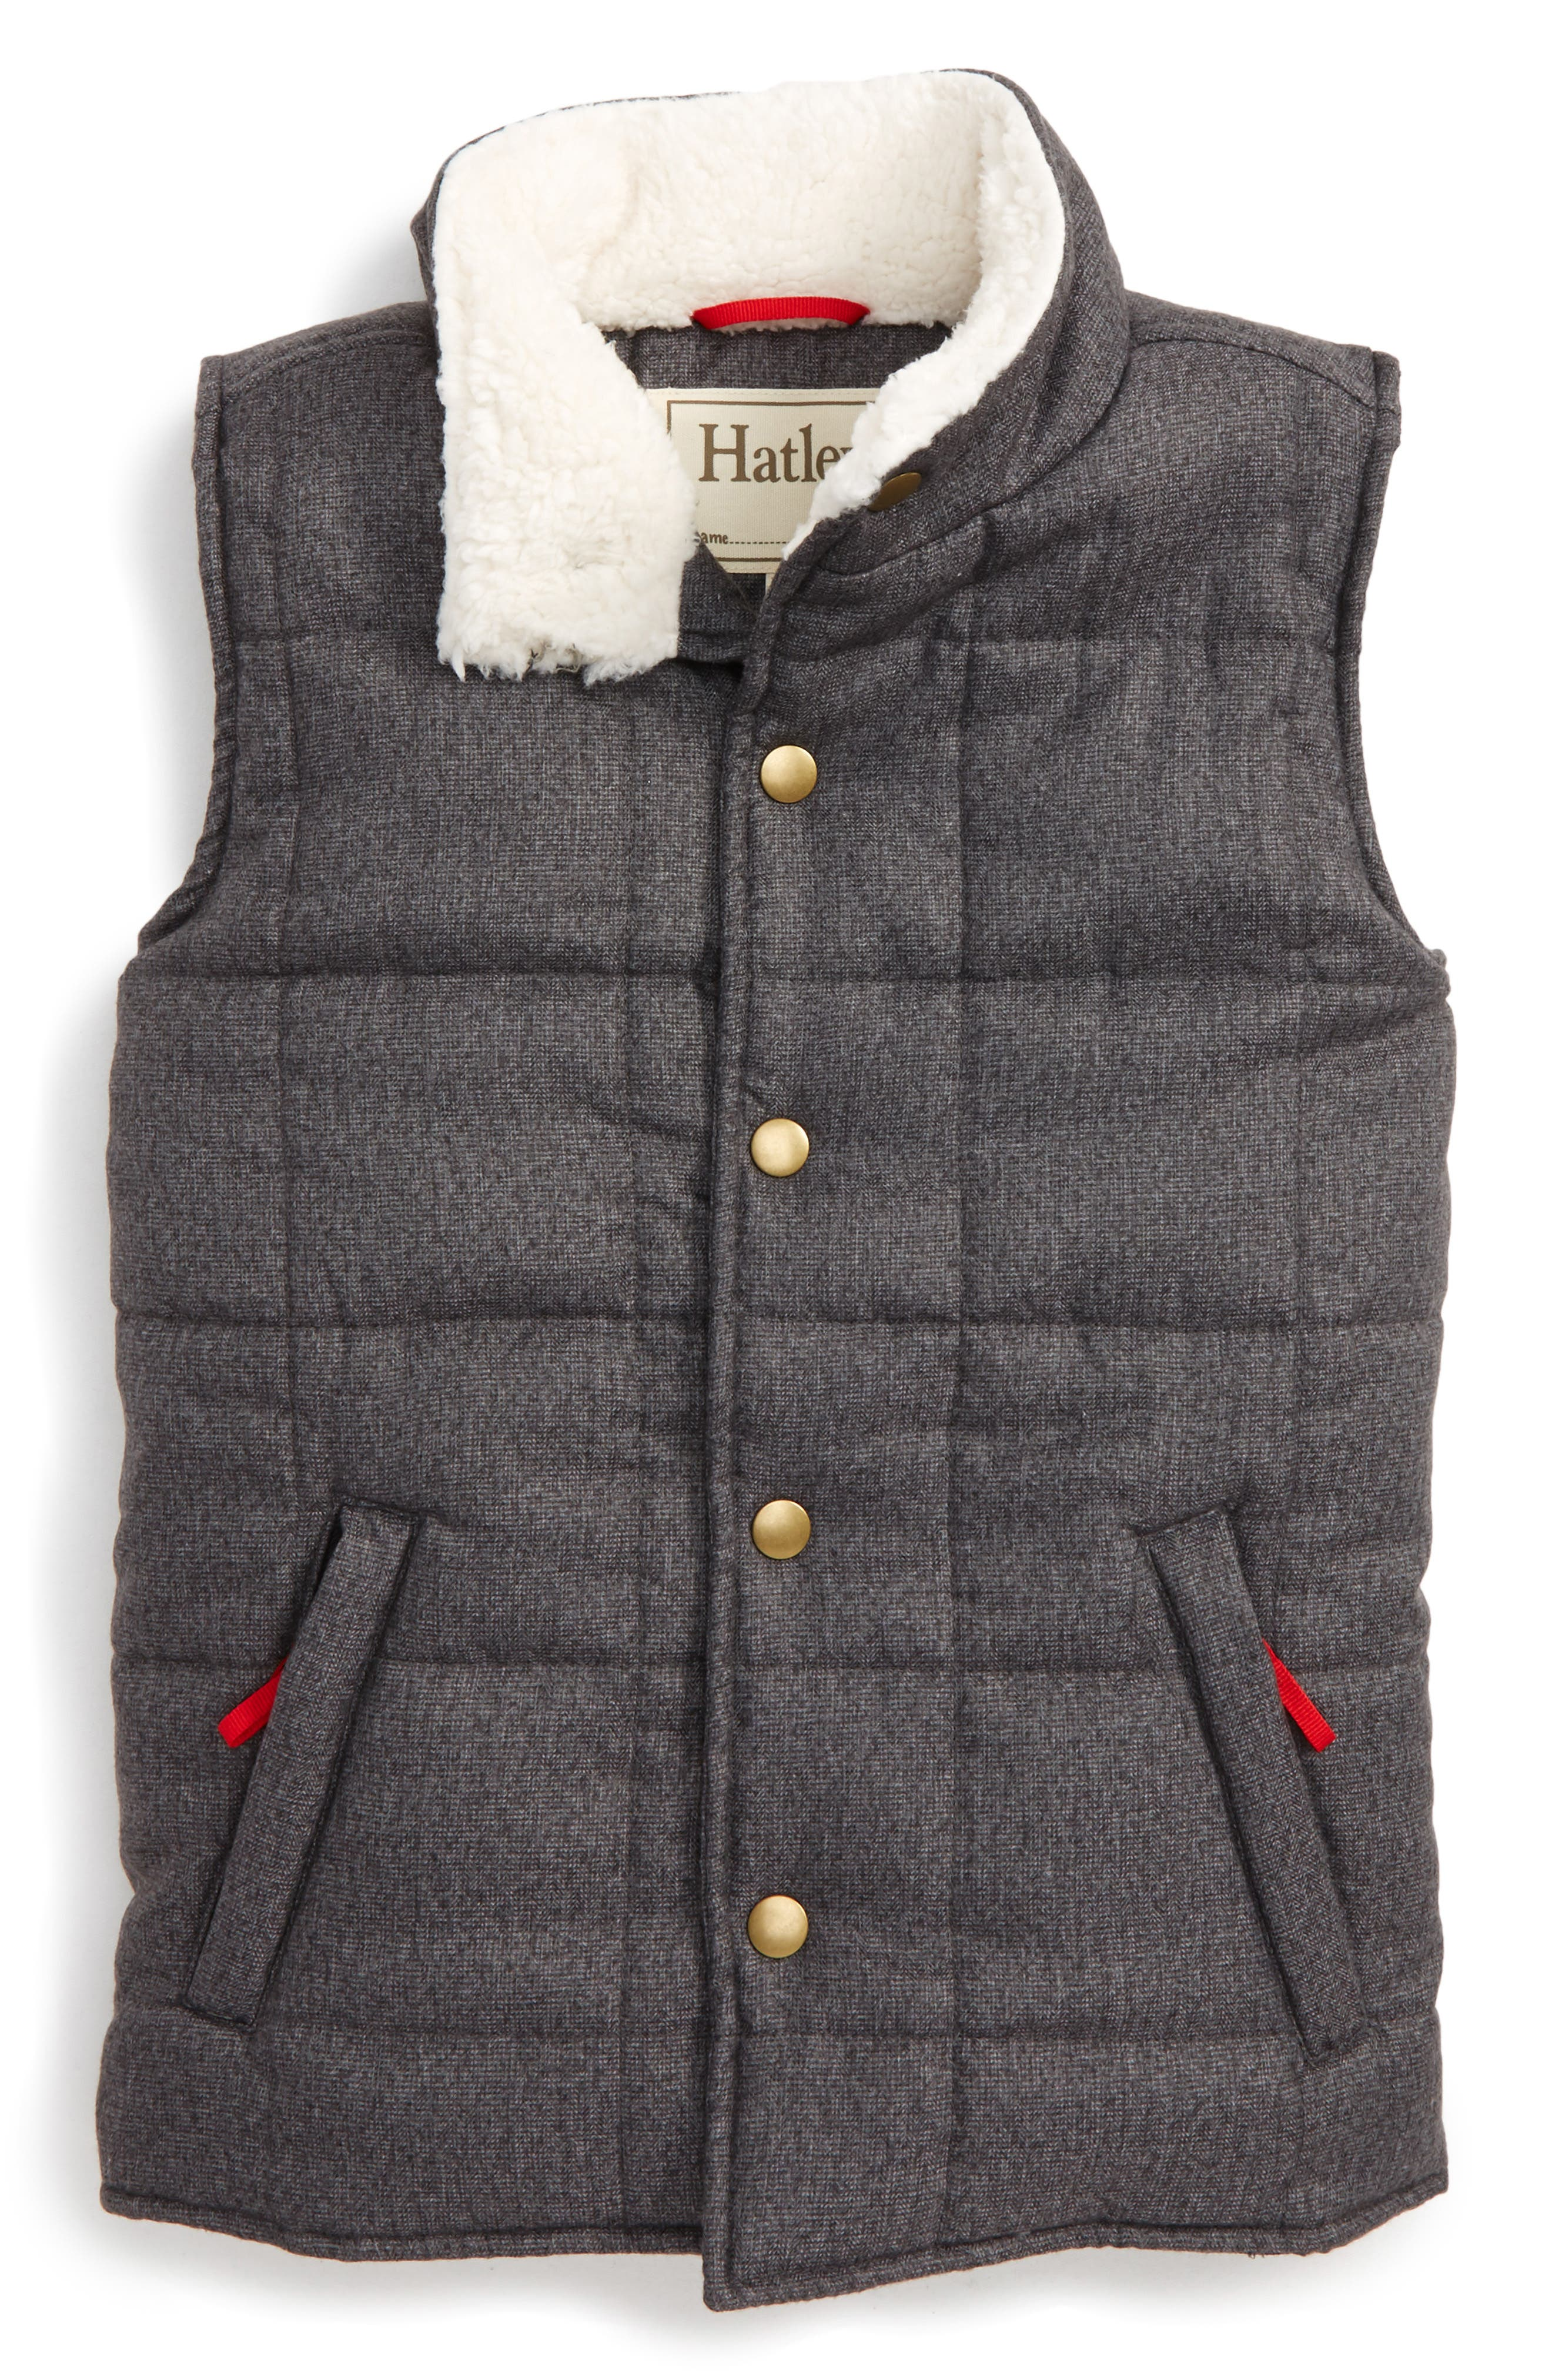 Hatley Quilted Vest (Toddler Boys, Little Boys & Big Boys)